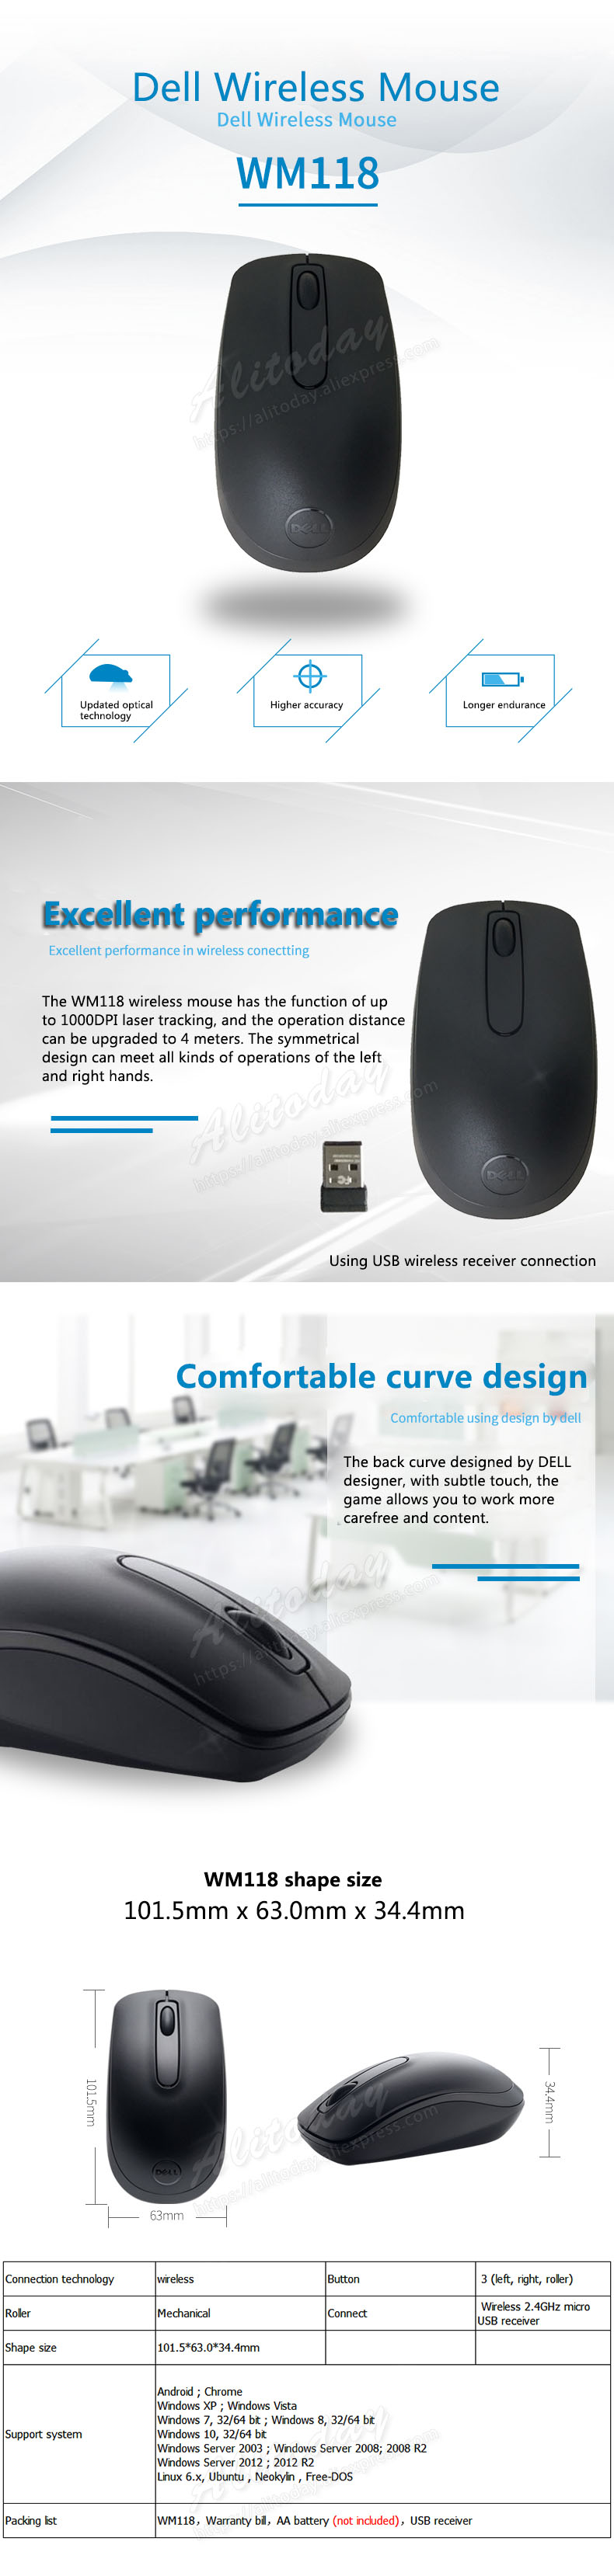 US $15 89 |DELL WM118 1000 DPI wireless optical mouse desktop all in one  laptop-in Mice from Computer & Office on Aliexpress com | Alibaba Group